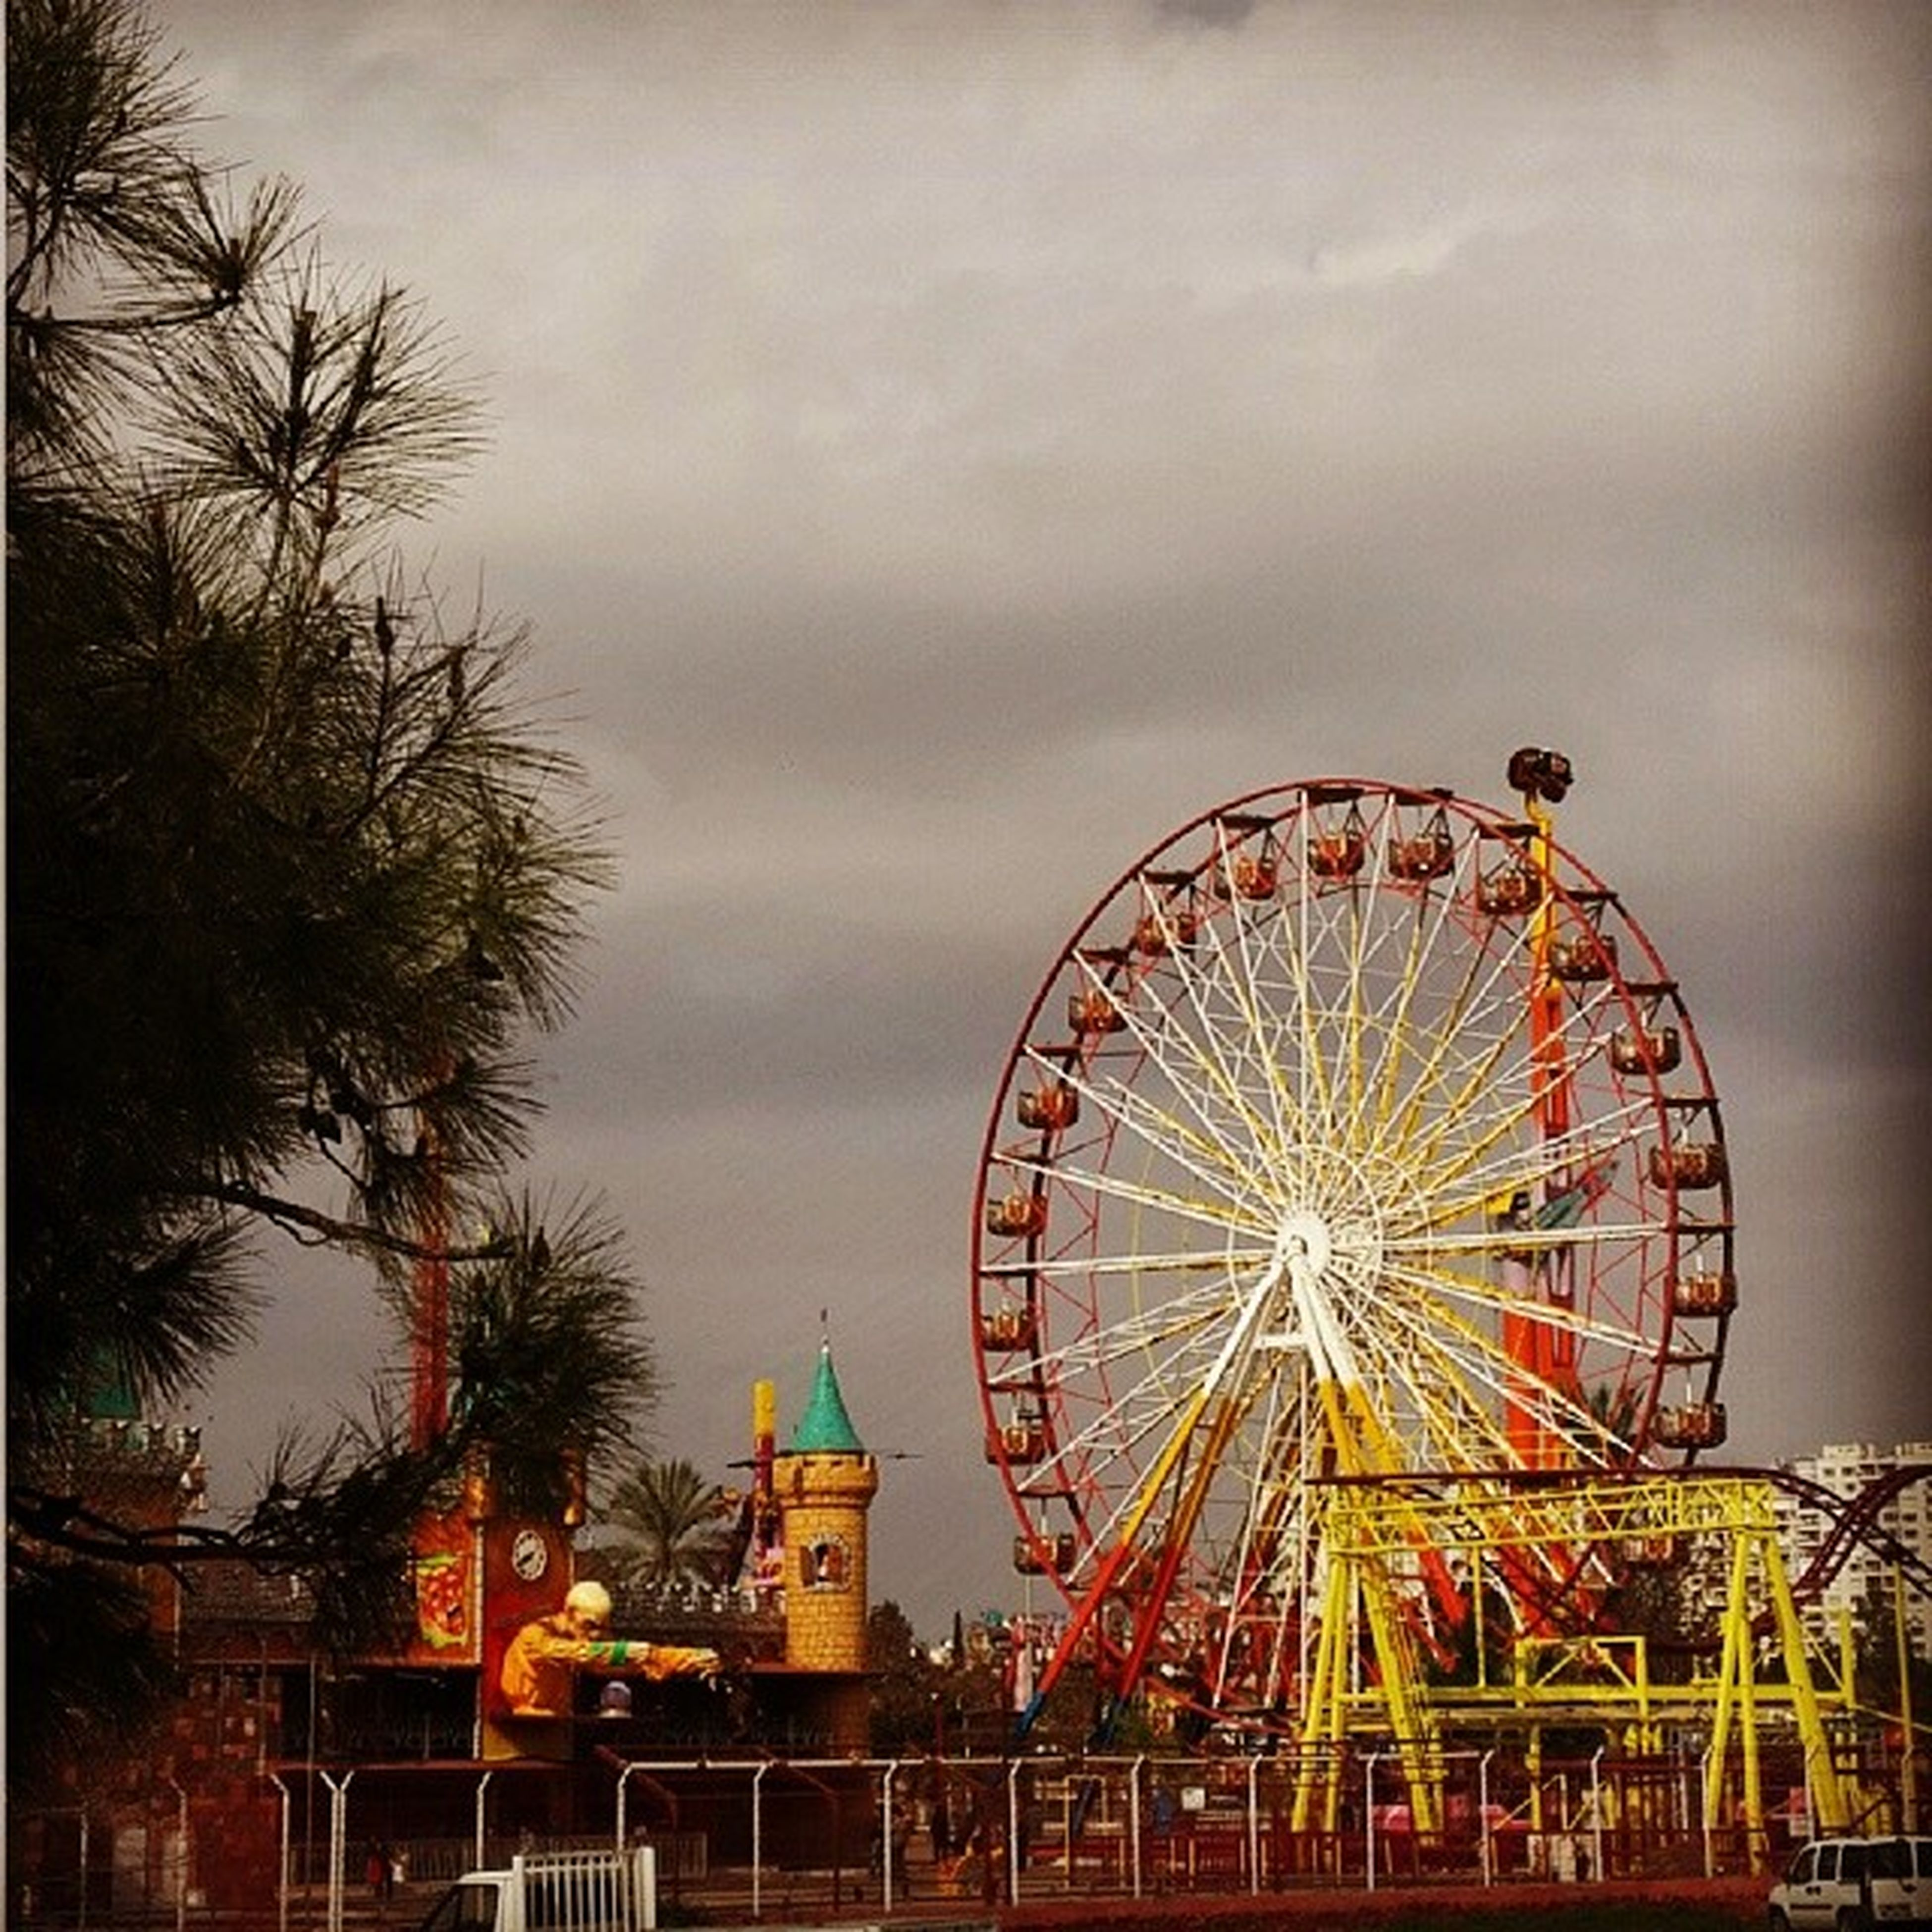 amusement park, ferris wheel, amusement park ride, sky, arts culture and entertainment, built structure, low angle view, cloud - sky, architecture, tree, cloudy, building exterior, metal, cloud, outdoors, no people, day, dusk, large, overcast